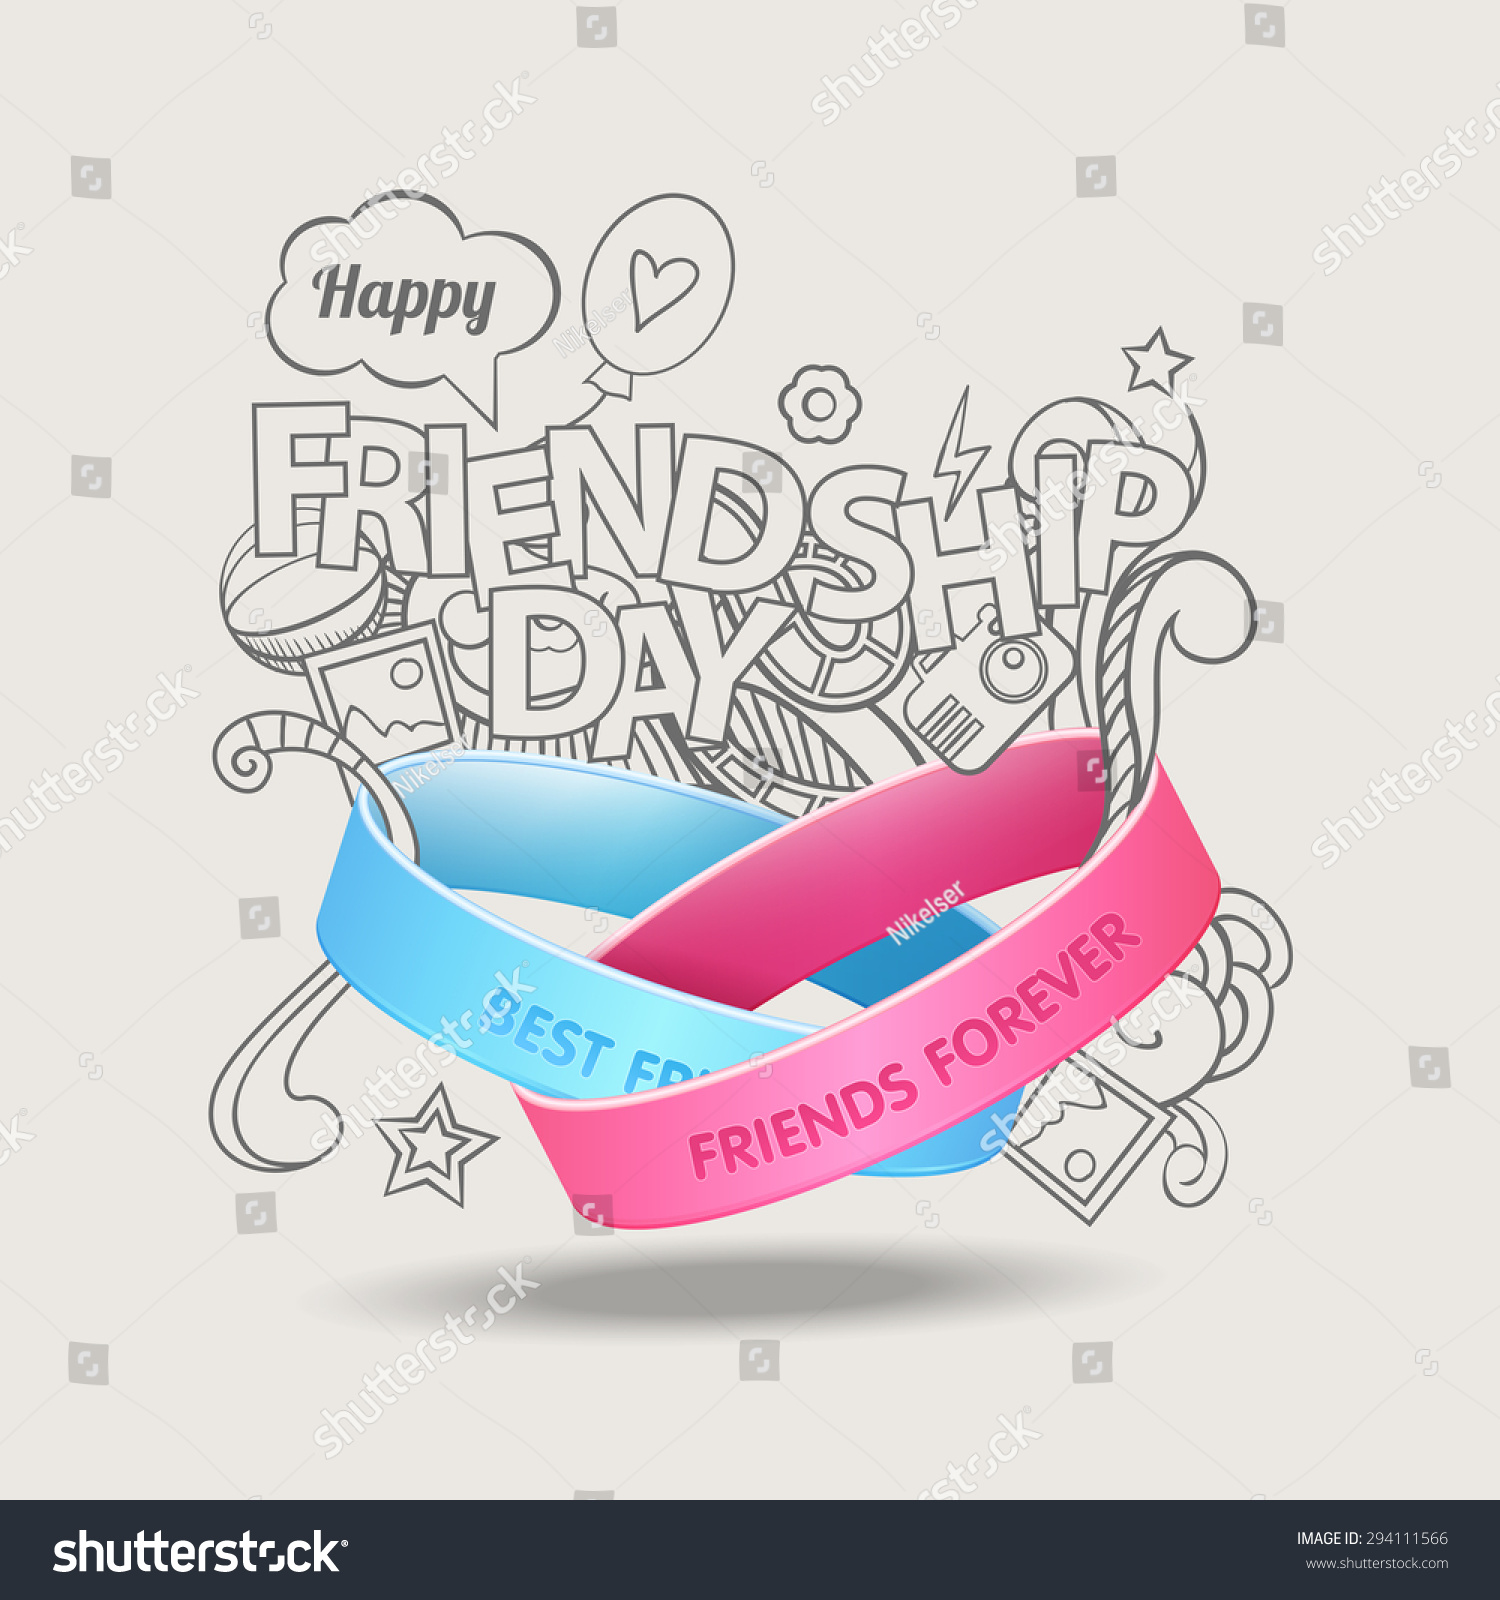 new bands friendship happy images day wallpaper